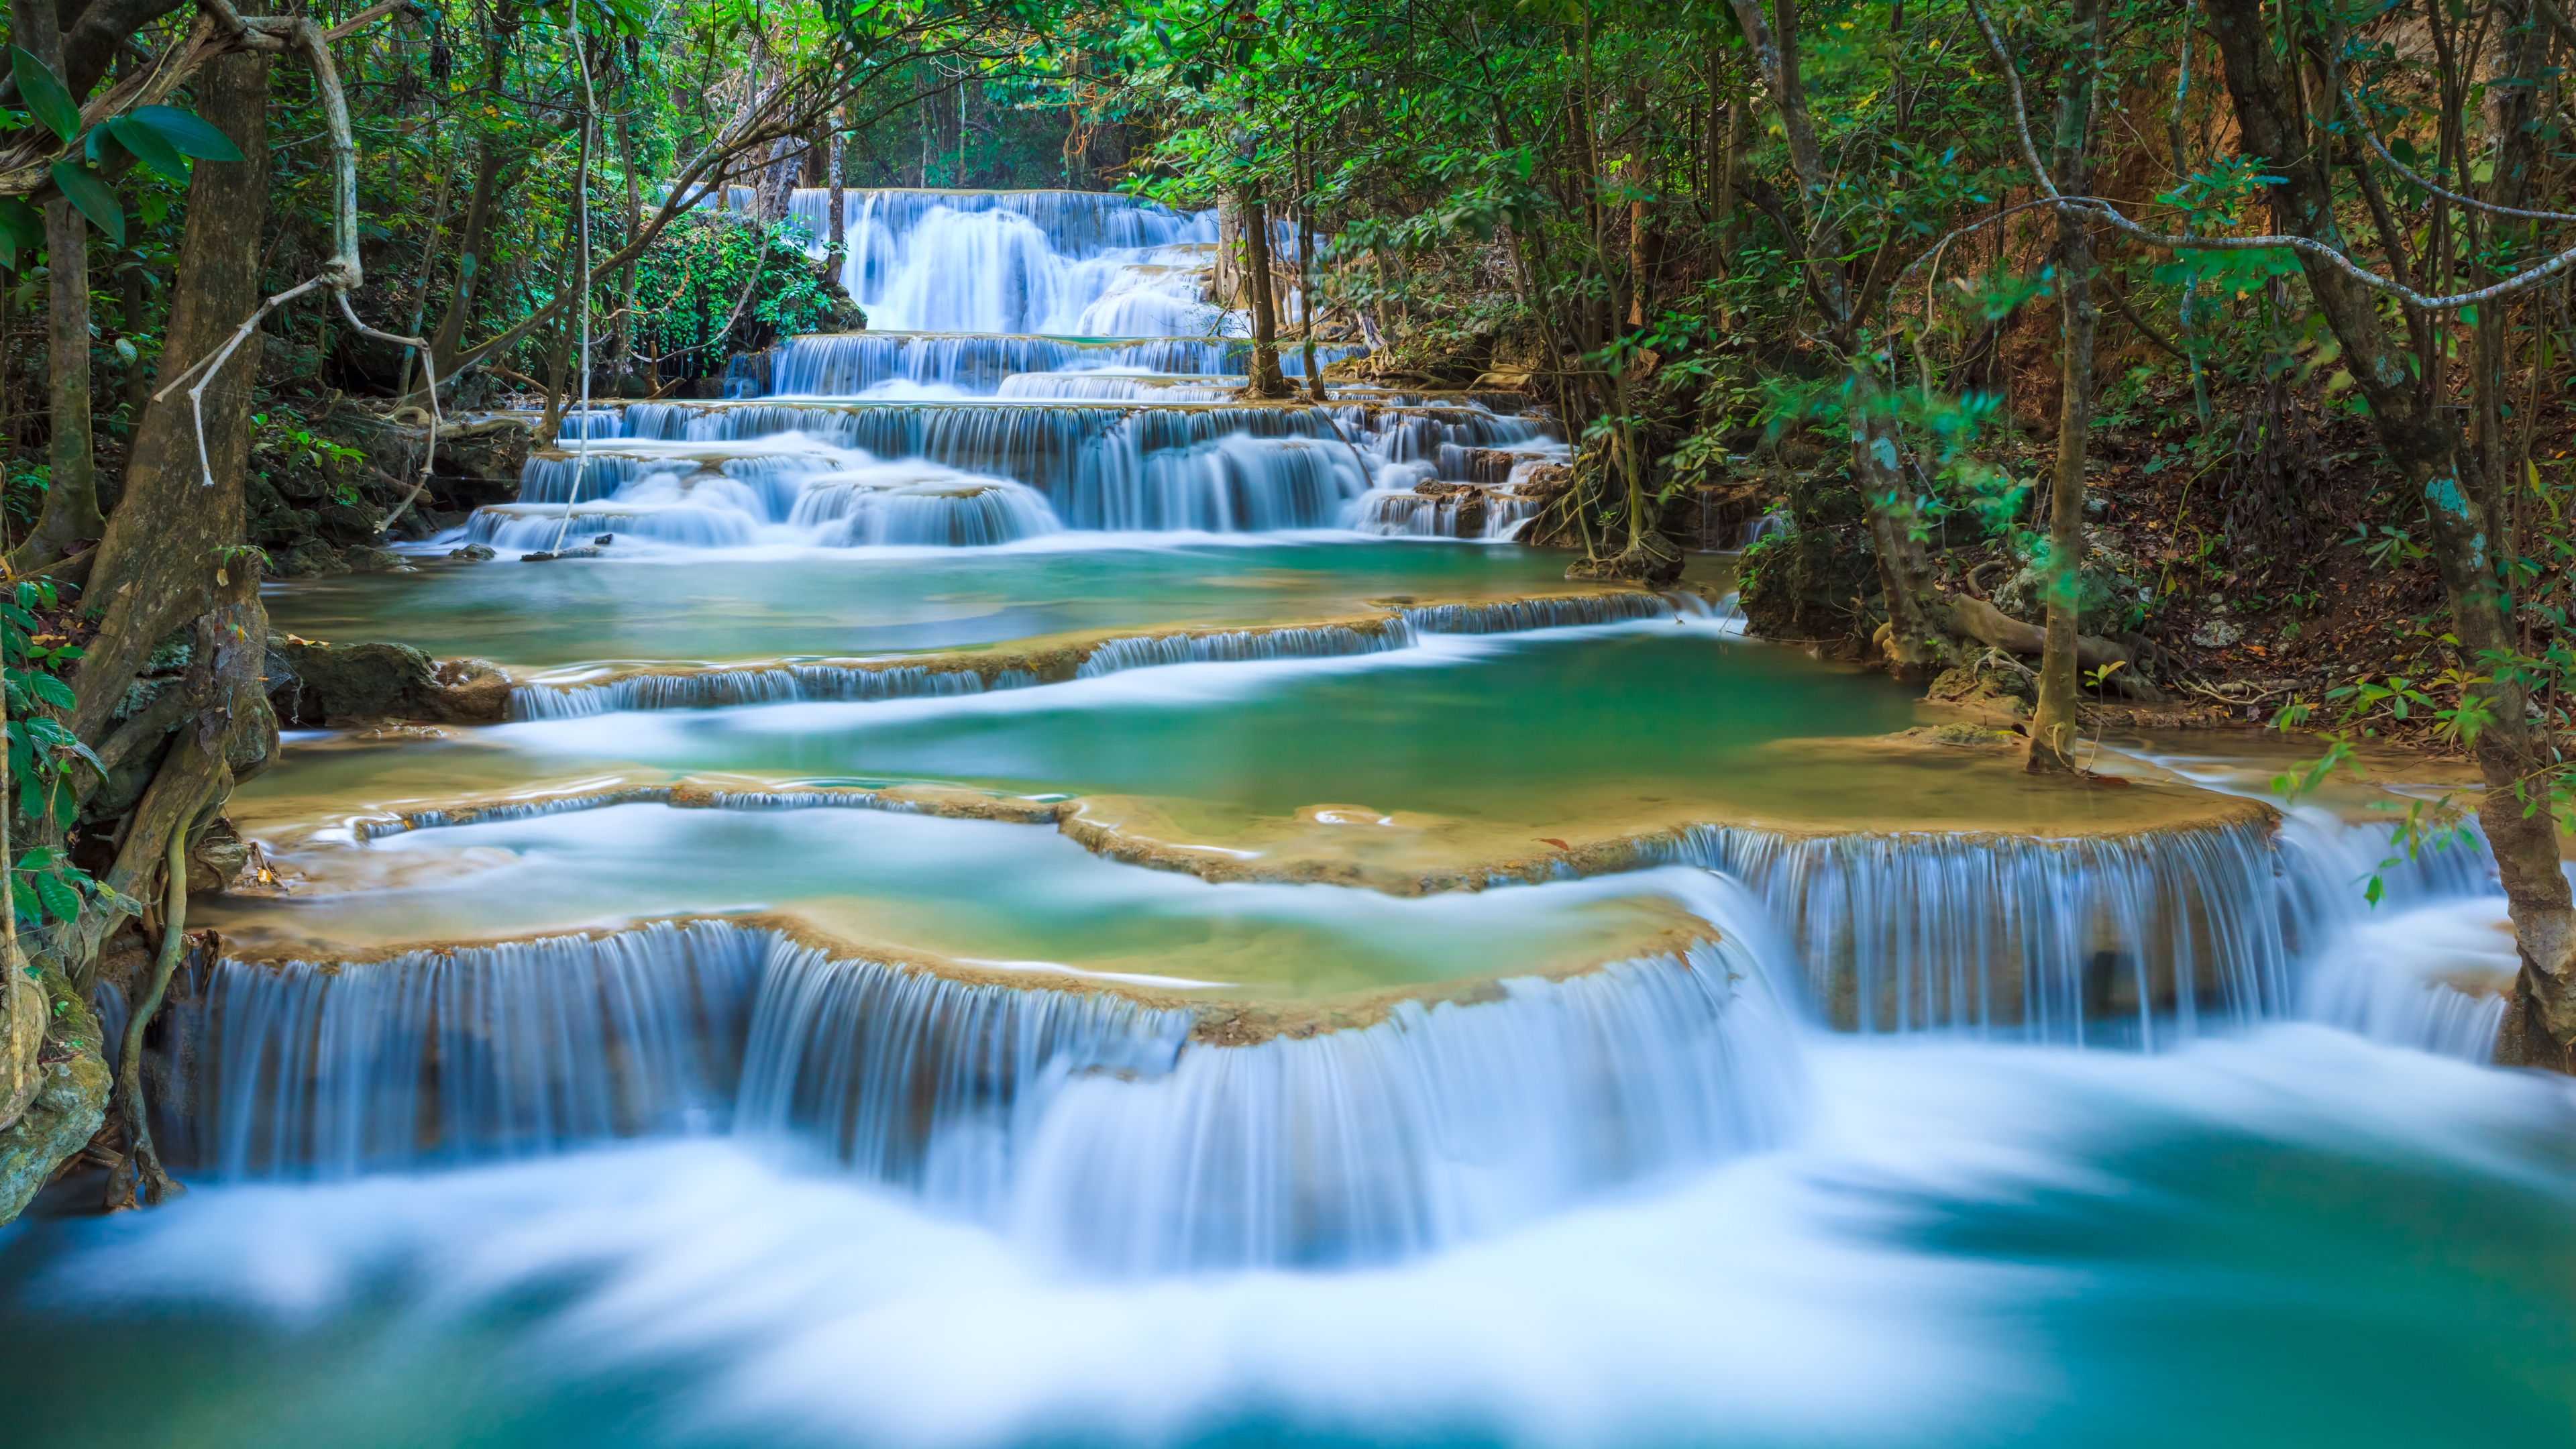 erawan waterfall 4k ultra hd wallpaper and background image